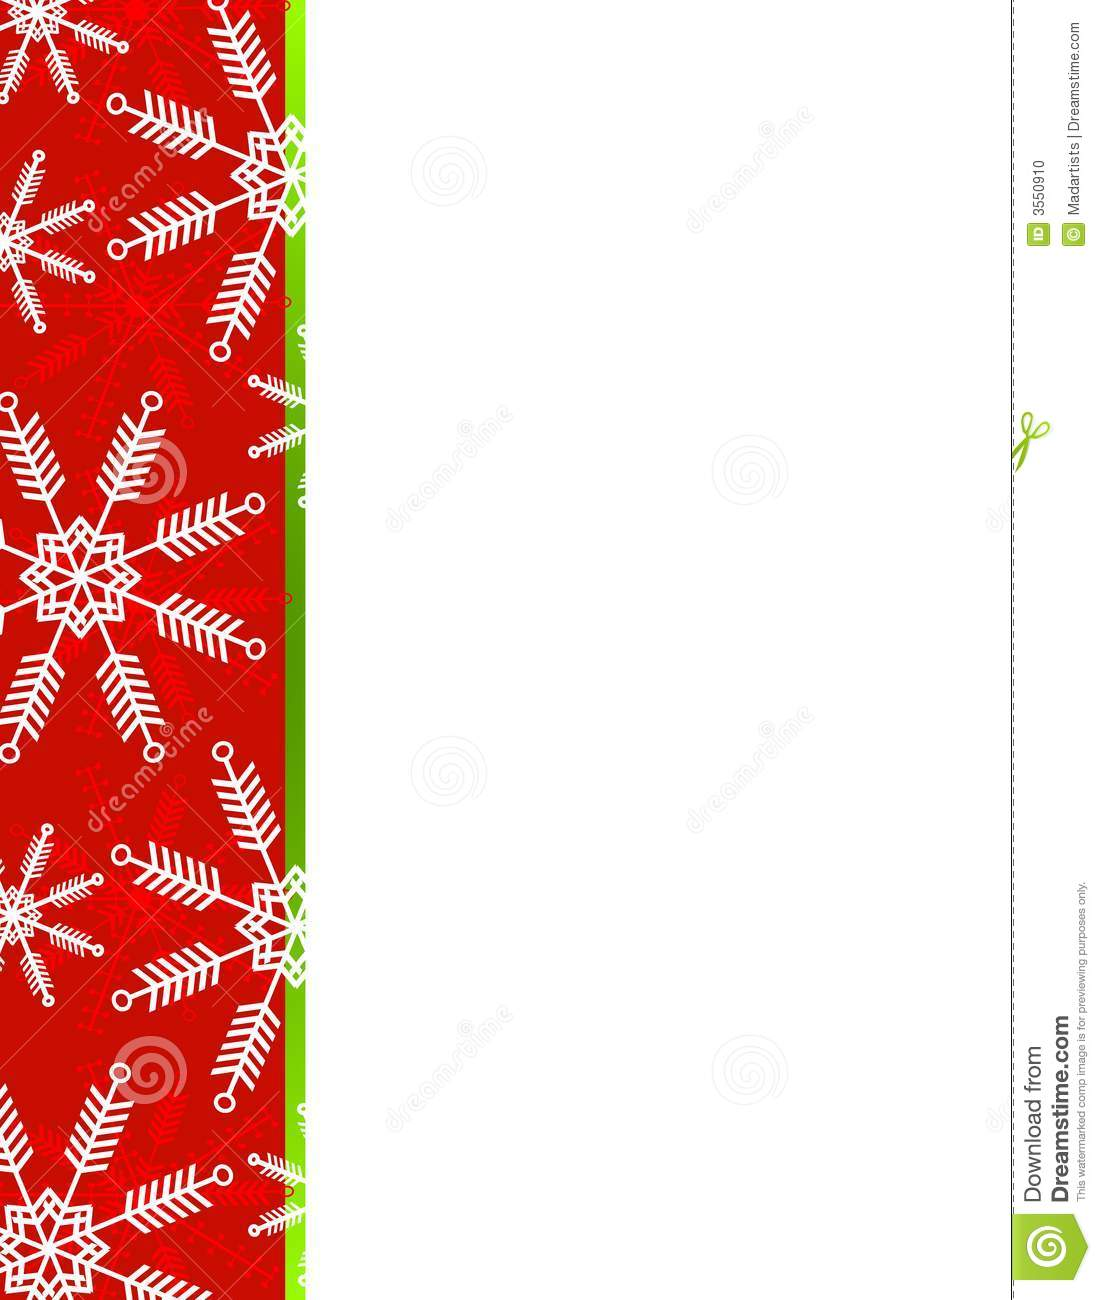 snowflakes christmas border stock illustration illustration of rh dreamstime com snowflake border clipart black and white snowflake border clipart